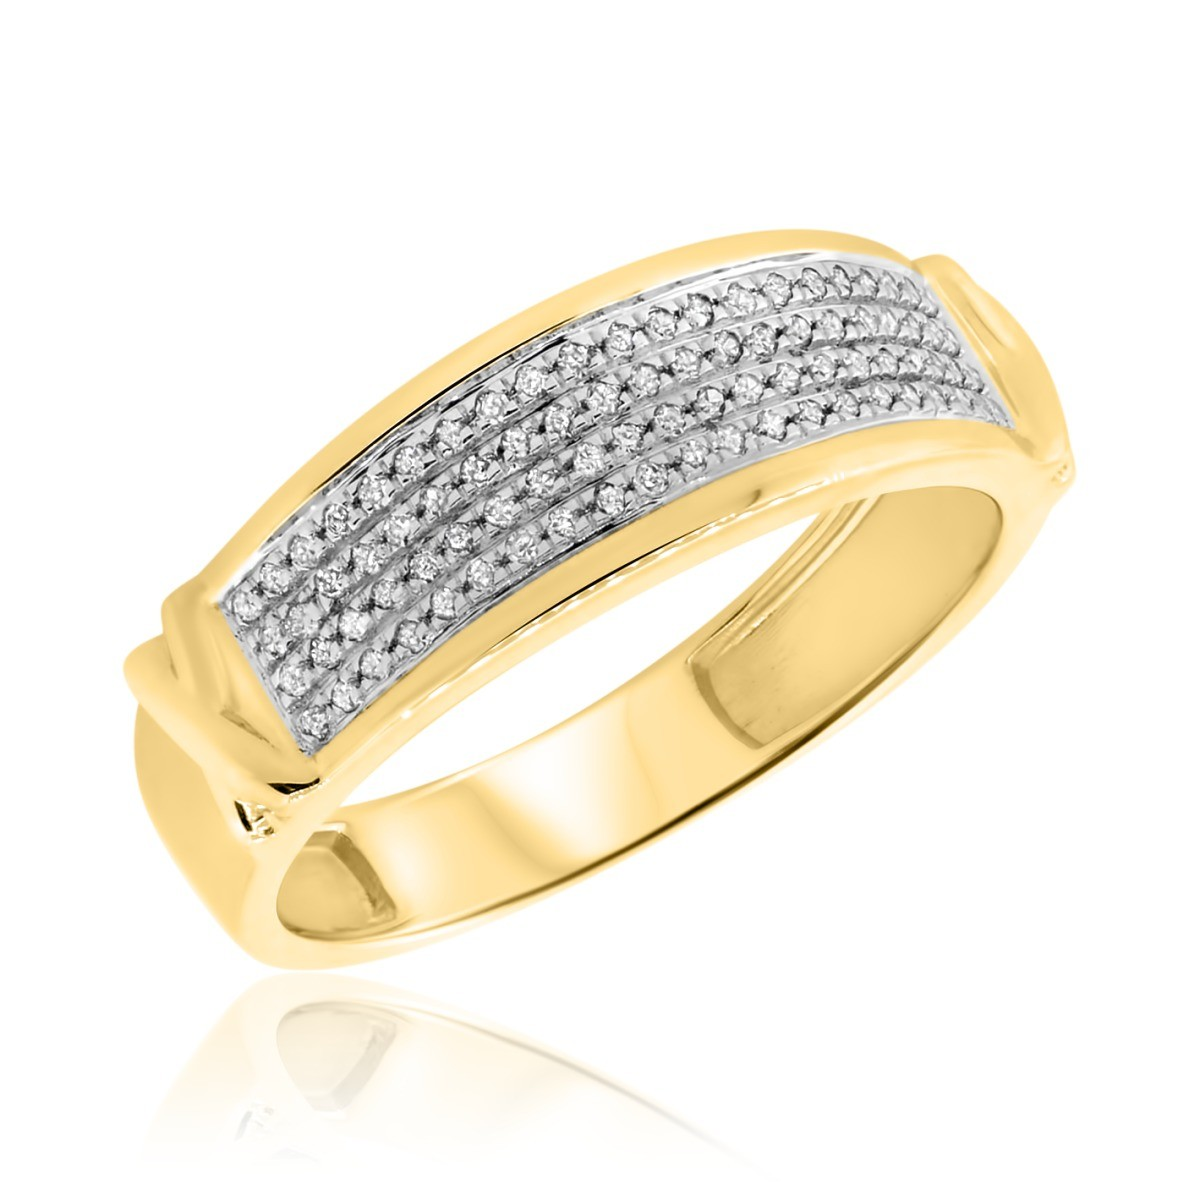 1/6 CT. T.W. Diamond Ladies Wedding Band  14K Yellow Gold